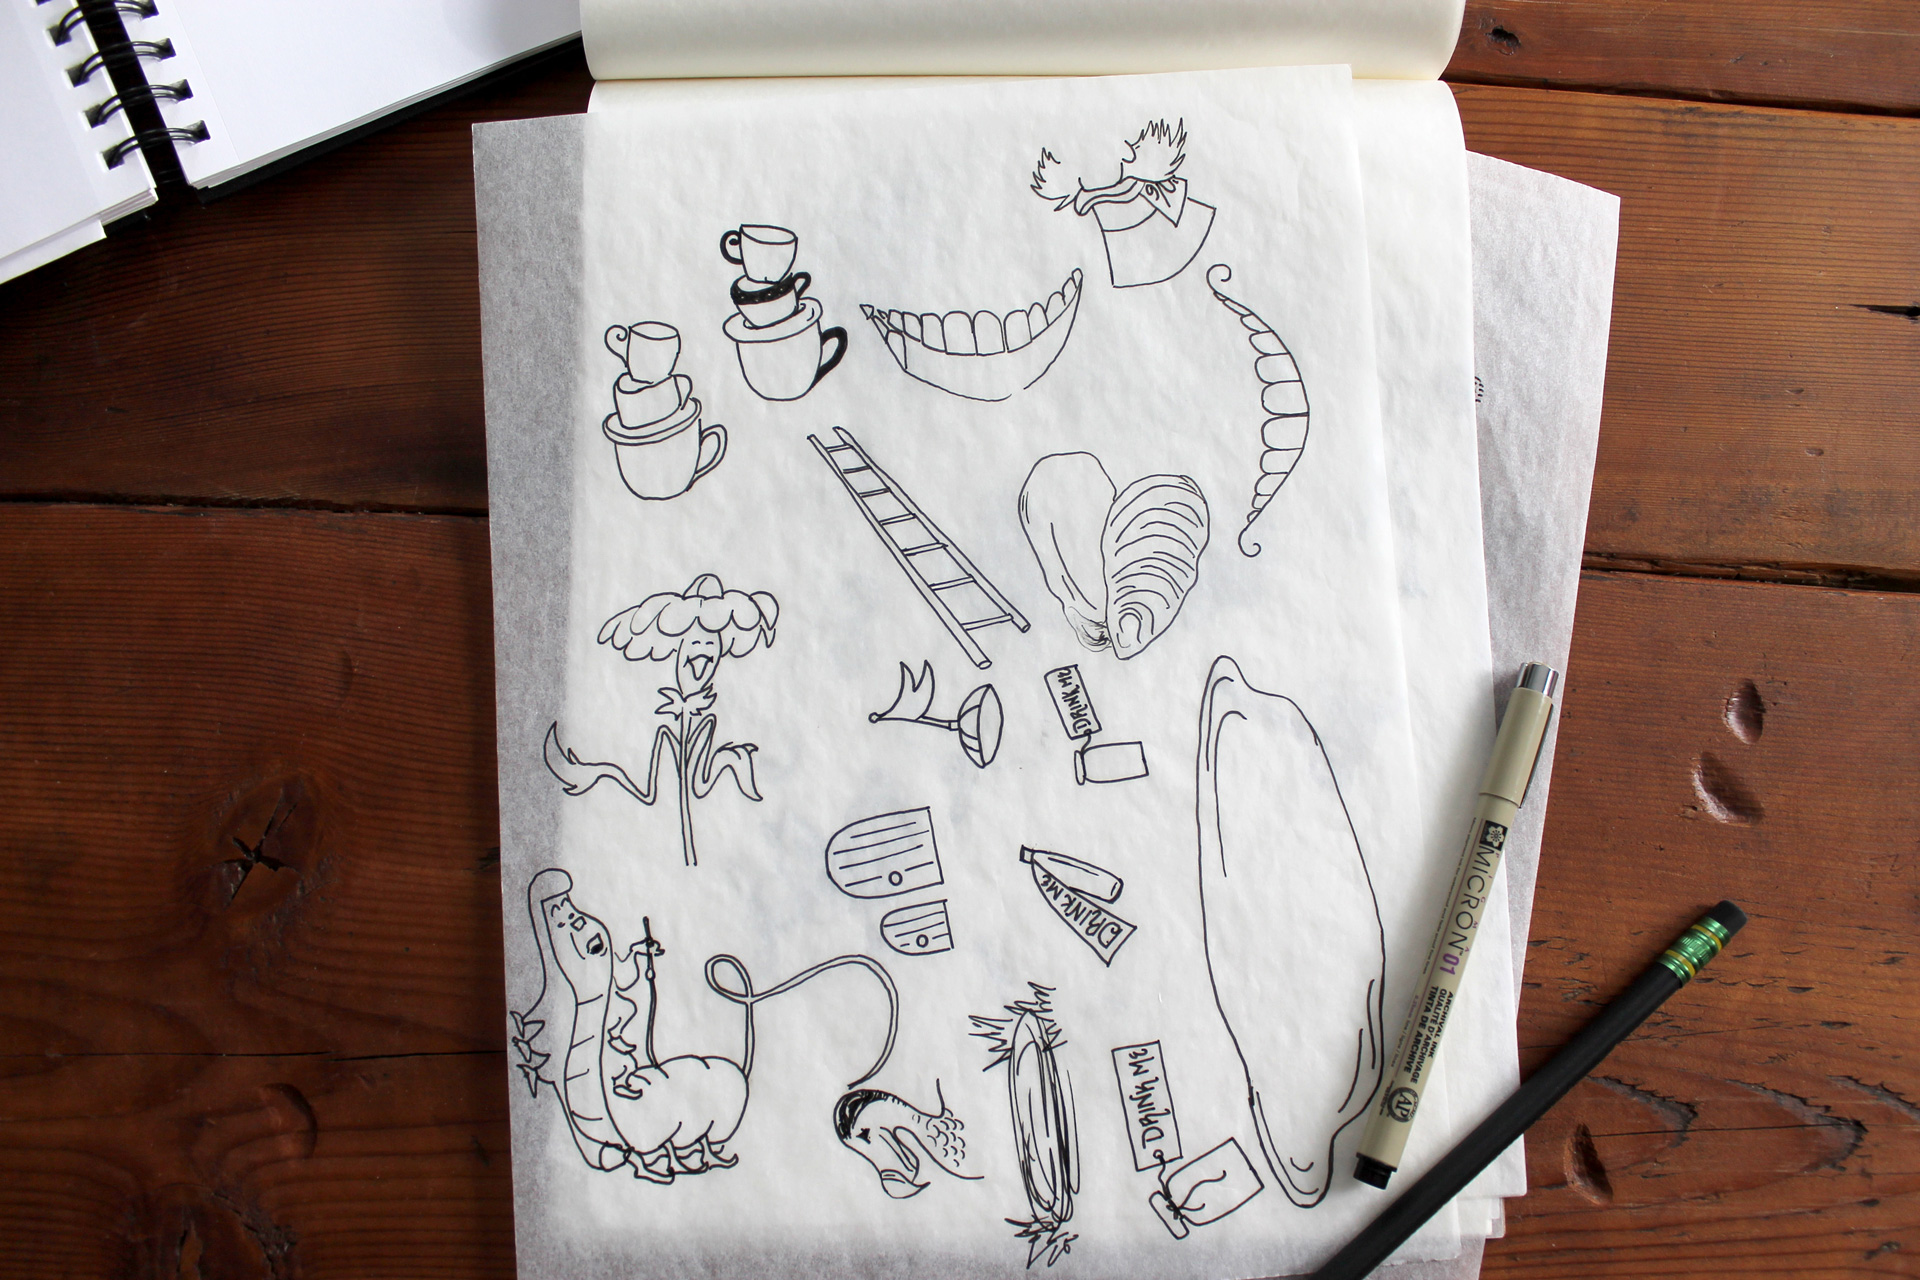 Tracing paper with sketches of animated Alice in Wonderland elements on a wood table next to a pen and pencil